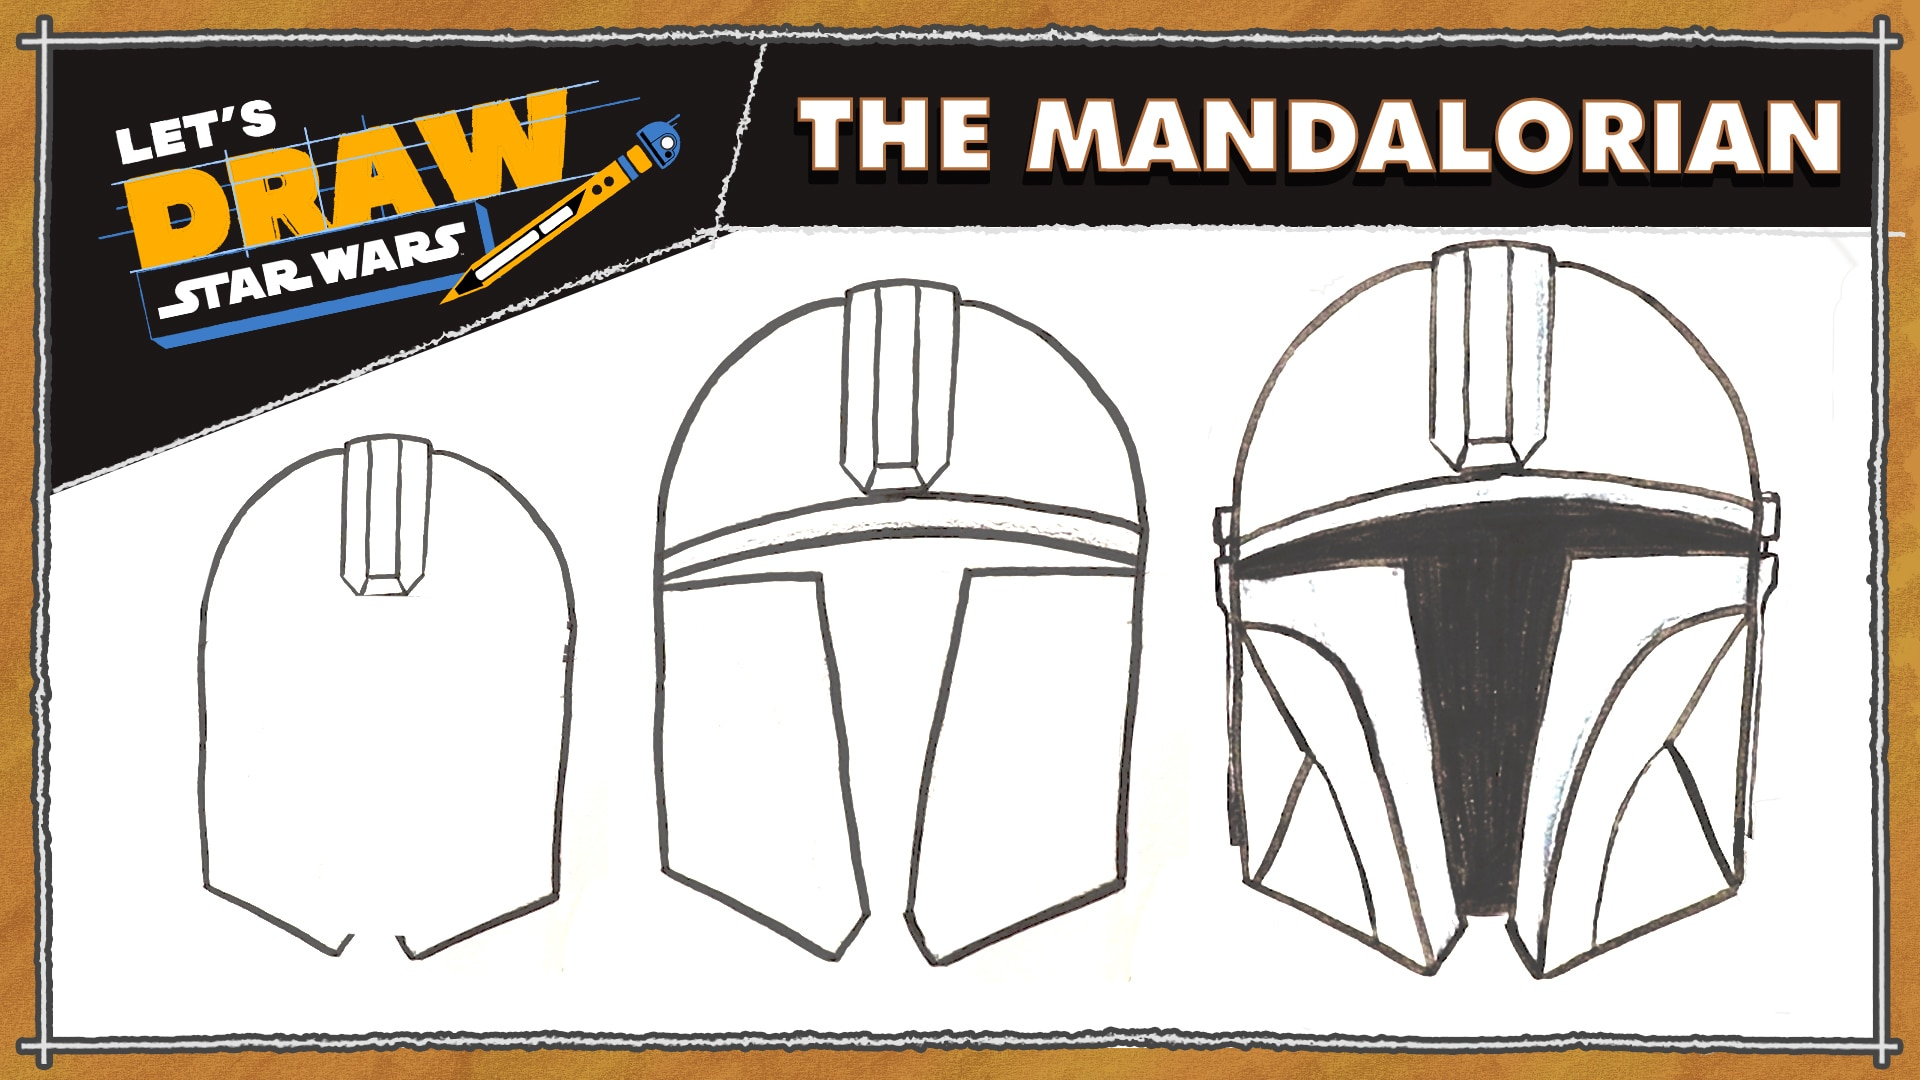 How to Draw a Mandalorian Helmet | Let's Draw Star Wars